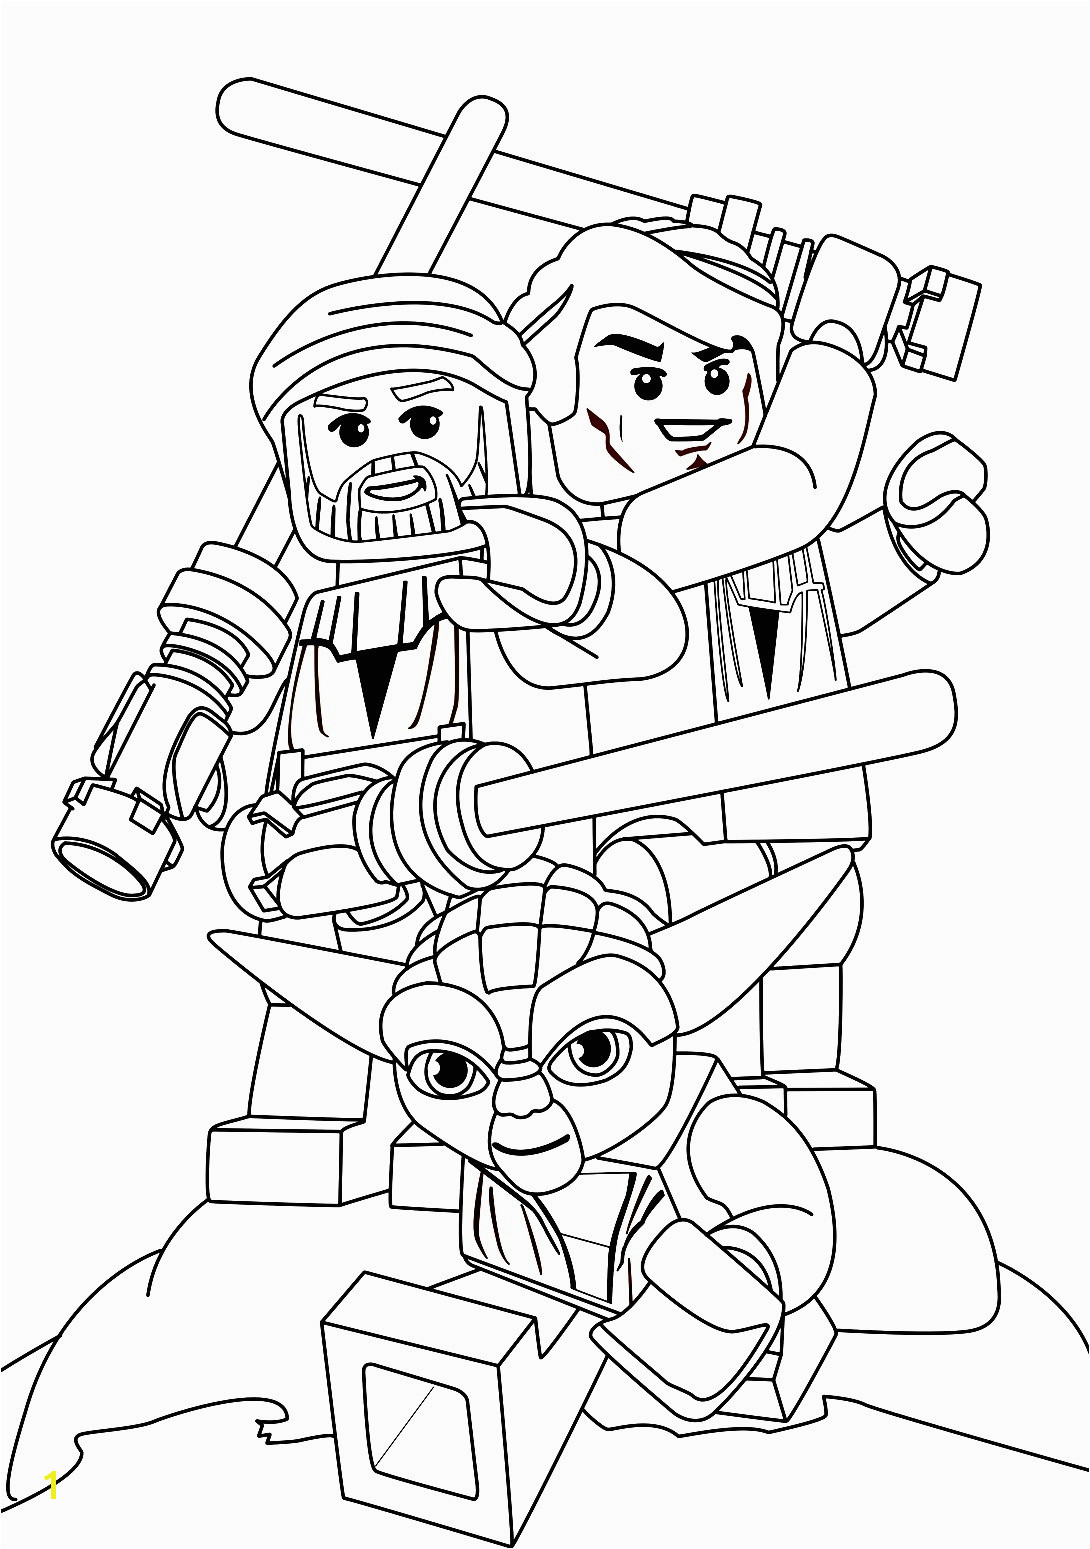 Lego Star Wars Coloring Pages Darth Maul Genial Malvorlagen Lego Star Wars · Coloring Page Yoda